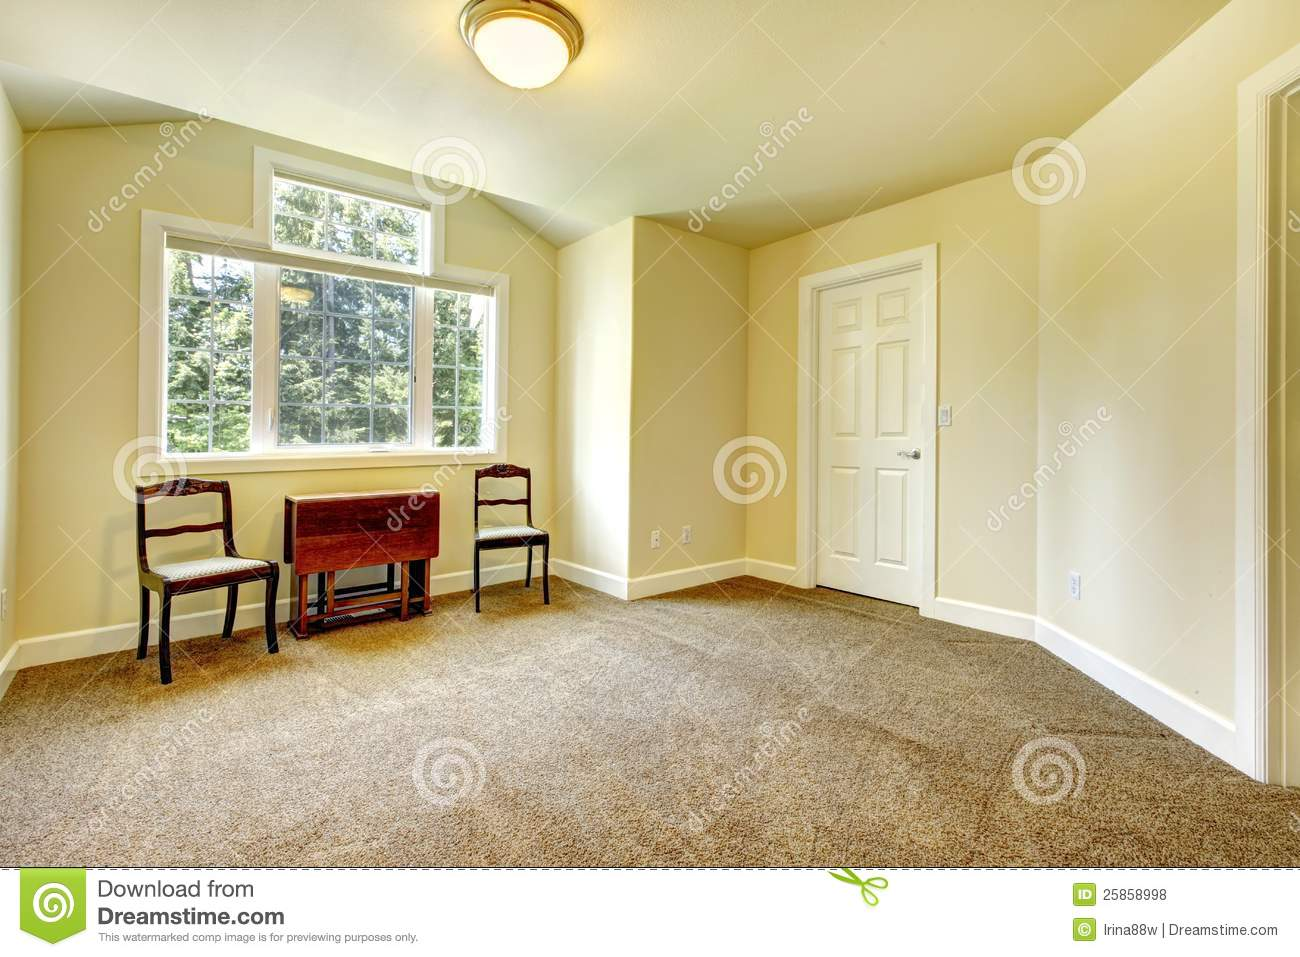 Empty Room With Yellow Walls And Brown Carpet. Stock Photo - Image ...